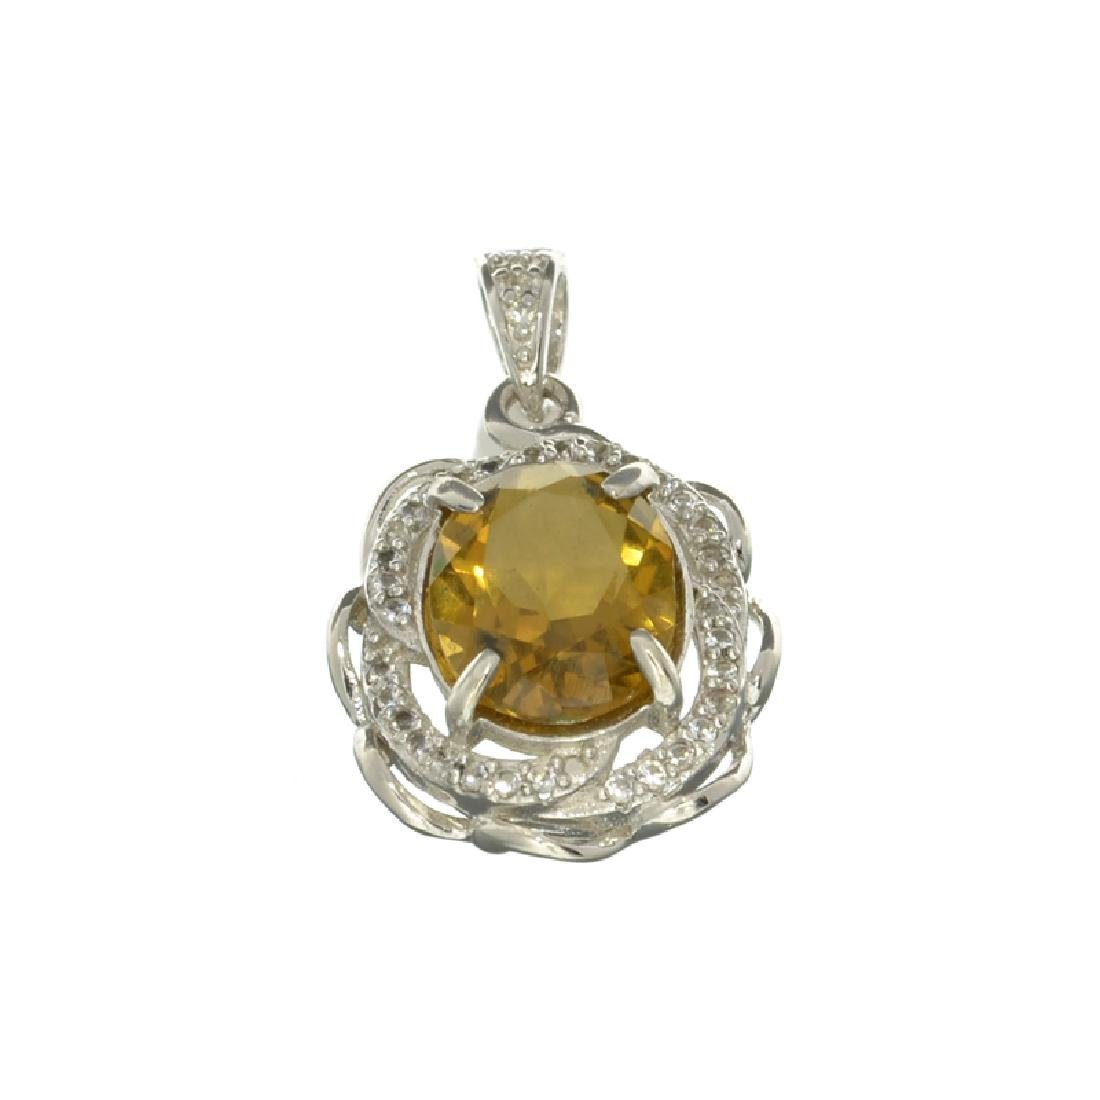 APP: 0.8k Fine Jewelry 2.50CT Oval Cut Citrine/White